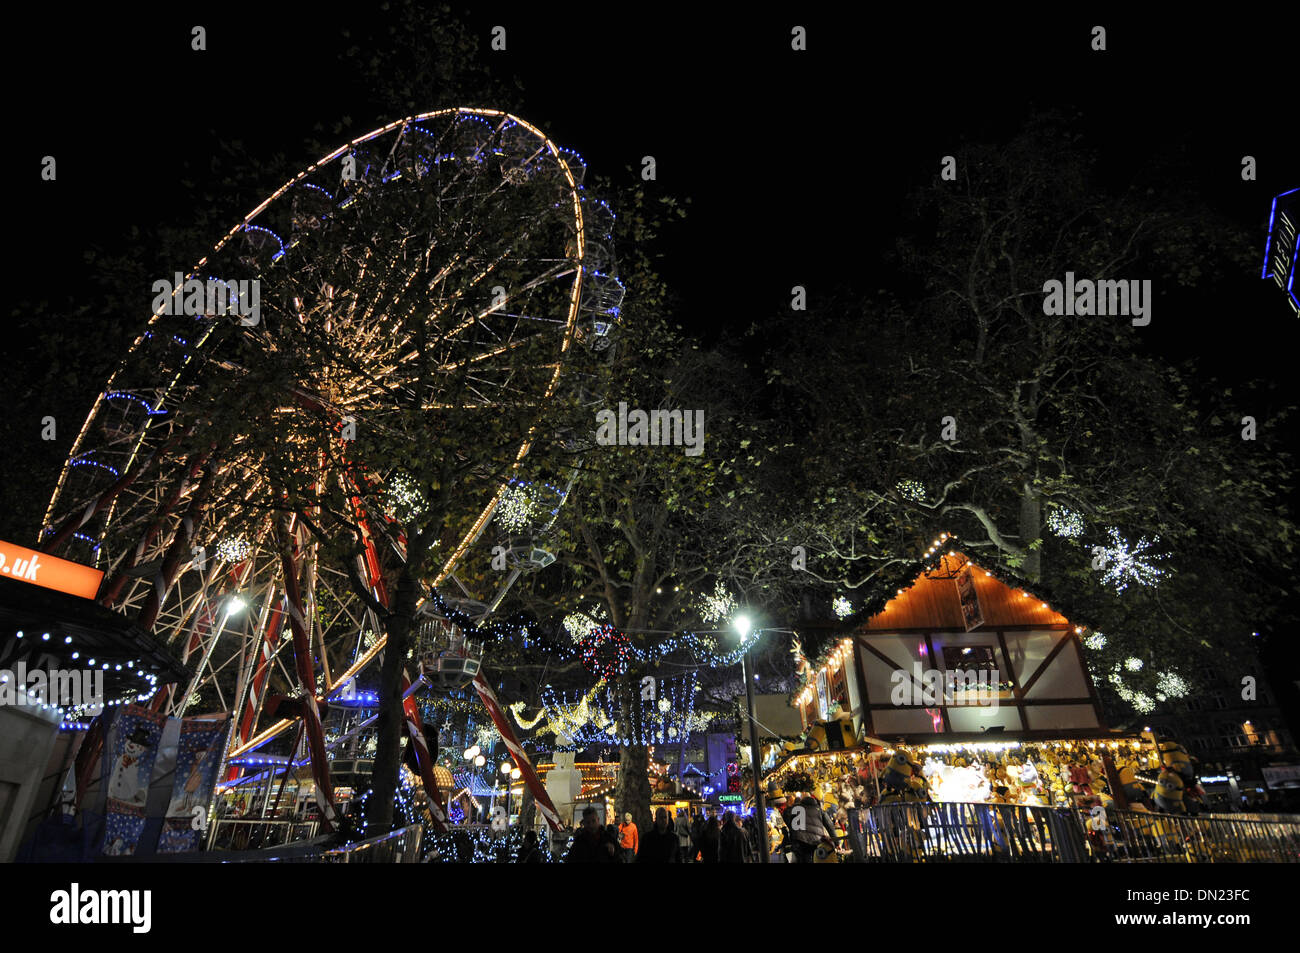 Christmas funfair Leicester Square London England - Stock Image